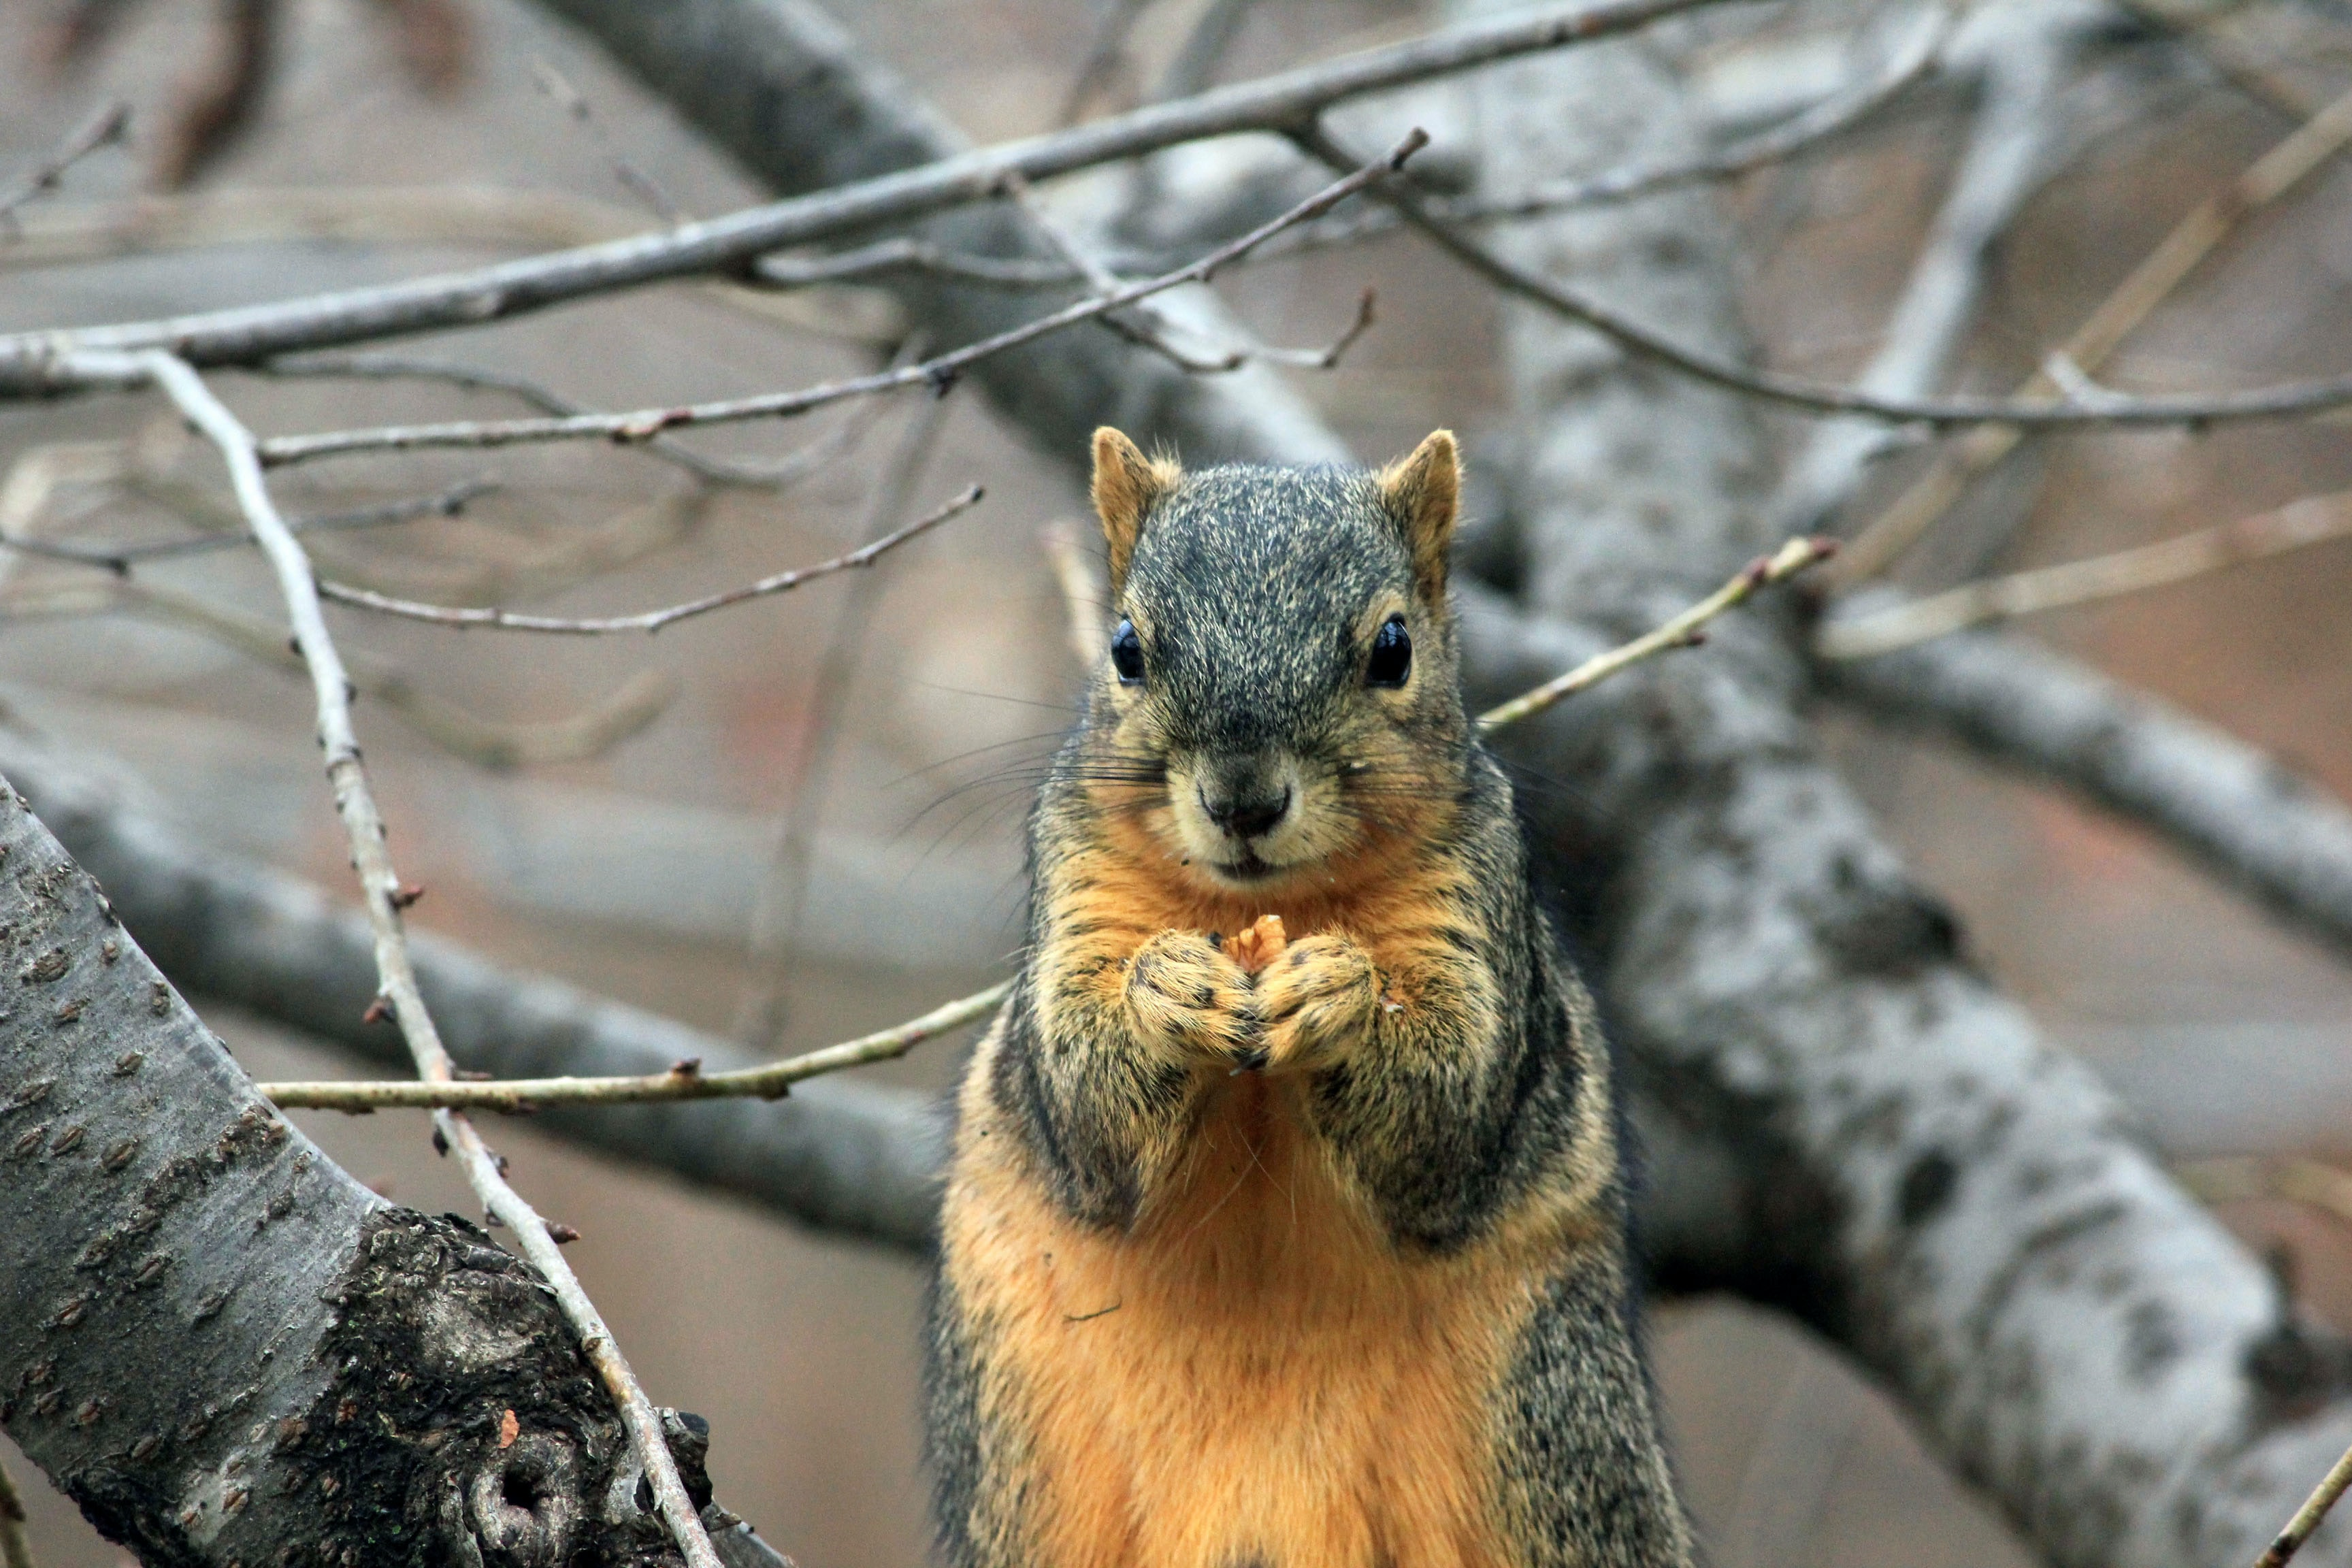 A close-up of a squirrel nibbling on a walnut on a thick branch